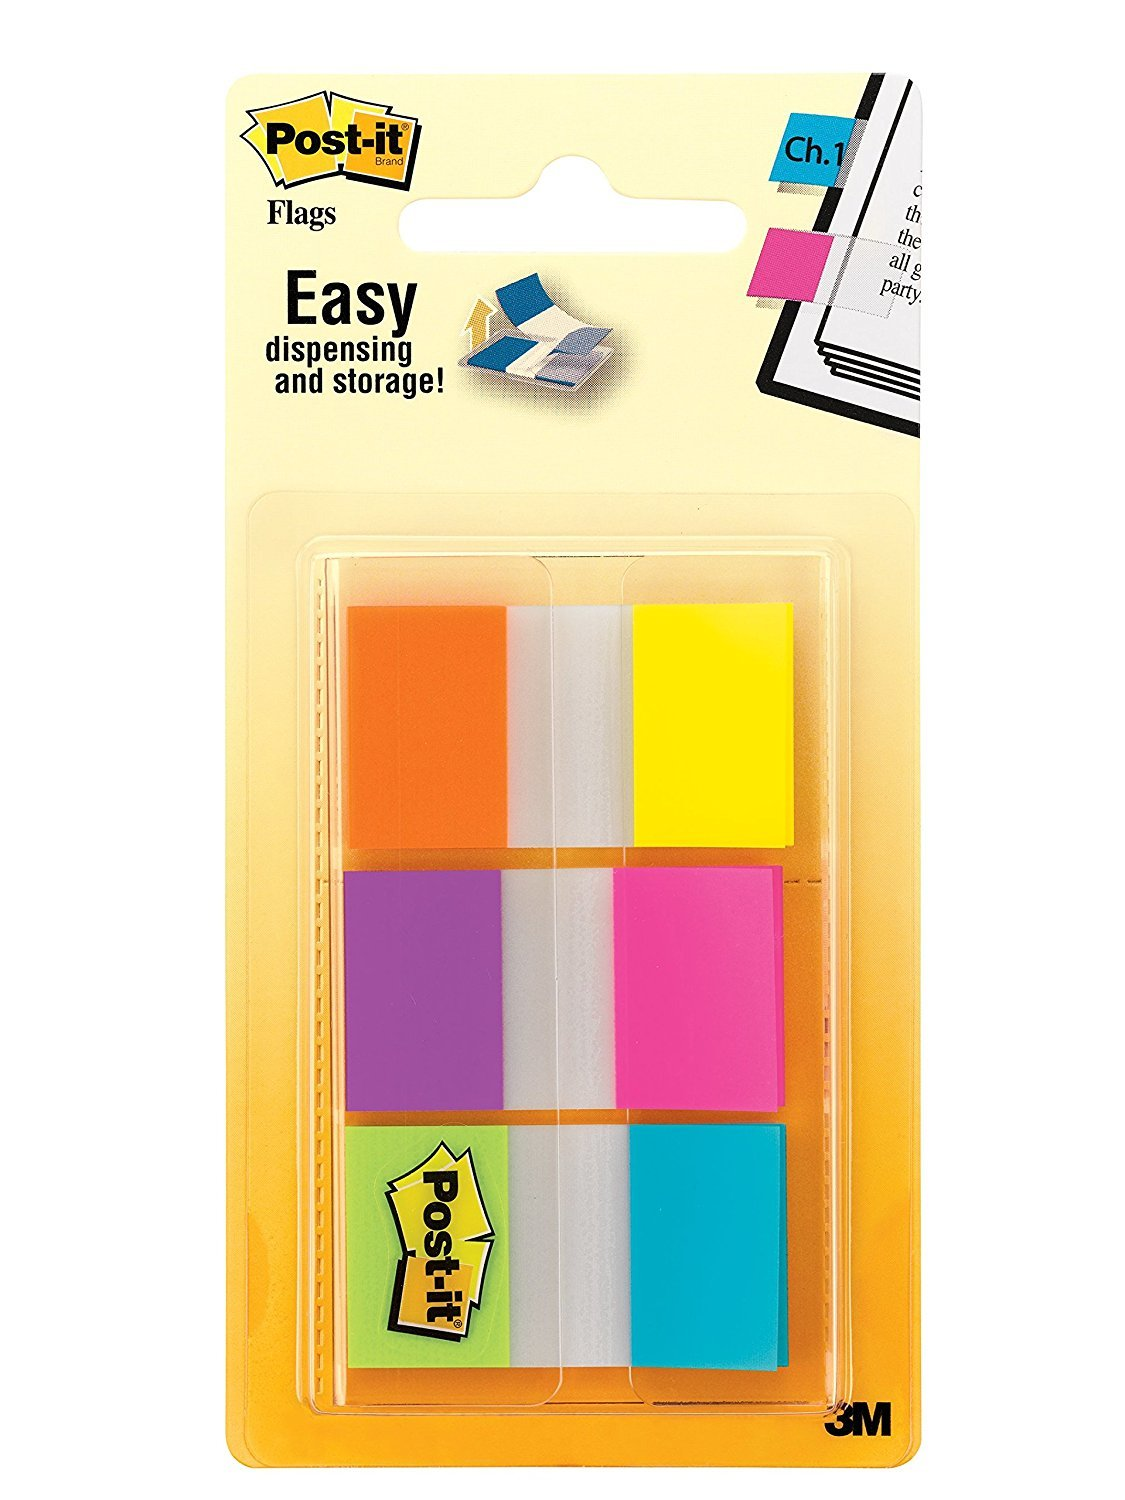 Post-It Flags Combination Pack - Electric Glow (60 Flags) image